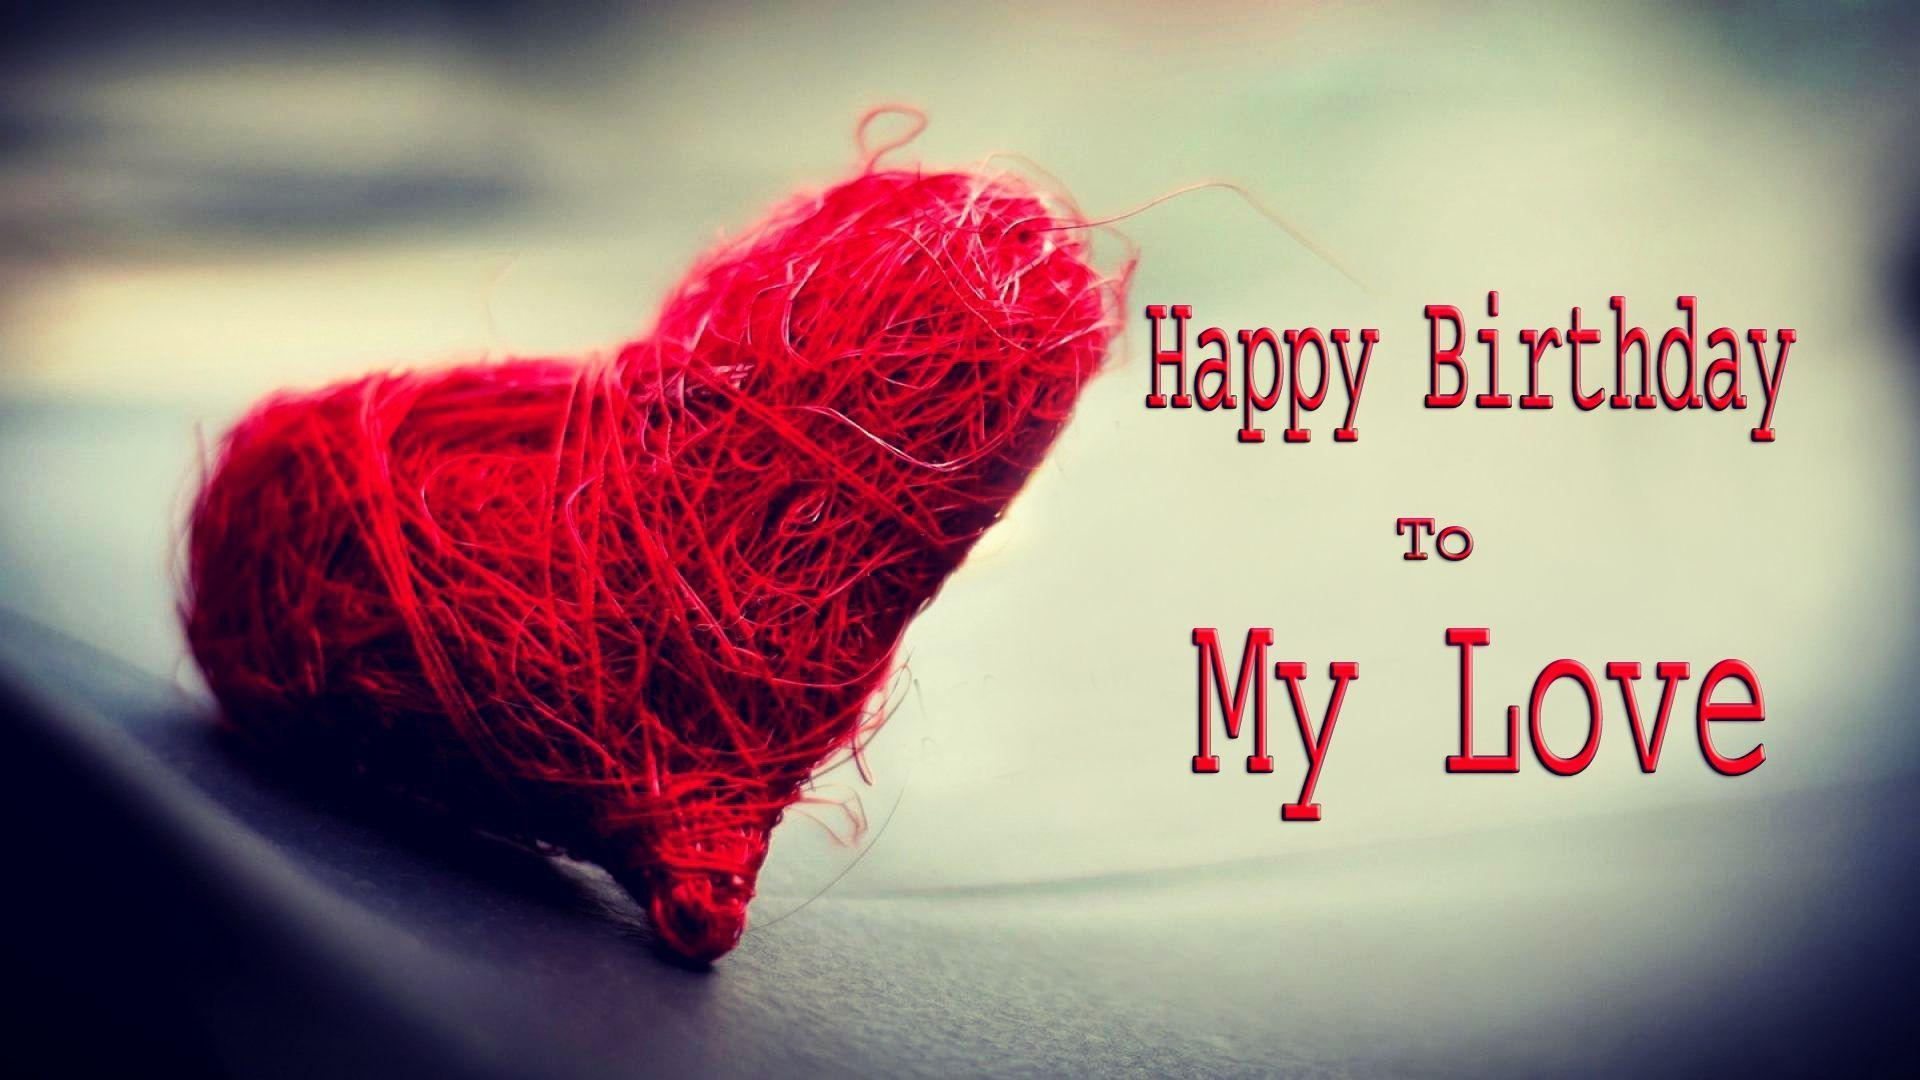 Happy Birthday To My Love Pictures, Photos, and Image for Facebook